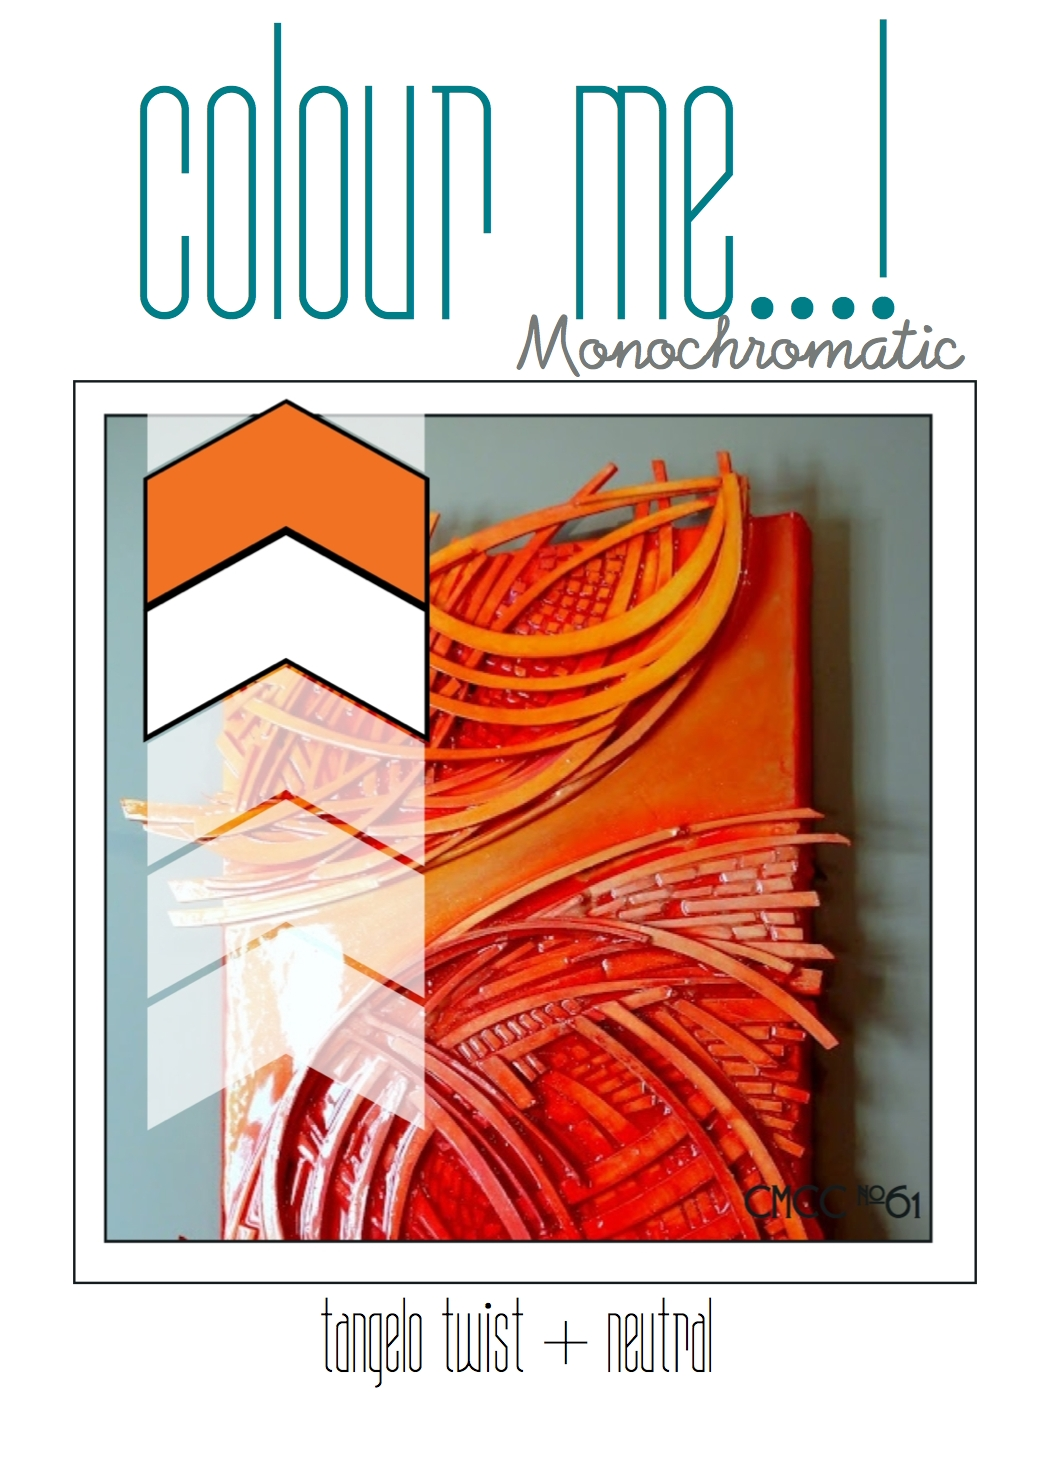 http://colourmecardchallenge.blogspot.de/2015/03/cmcc61-colour-me-monochromatic.html